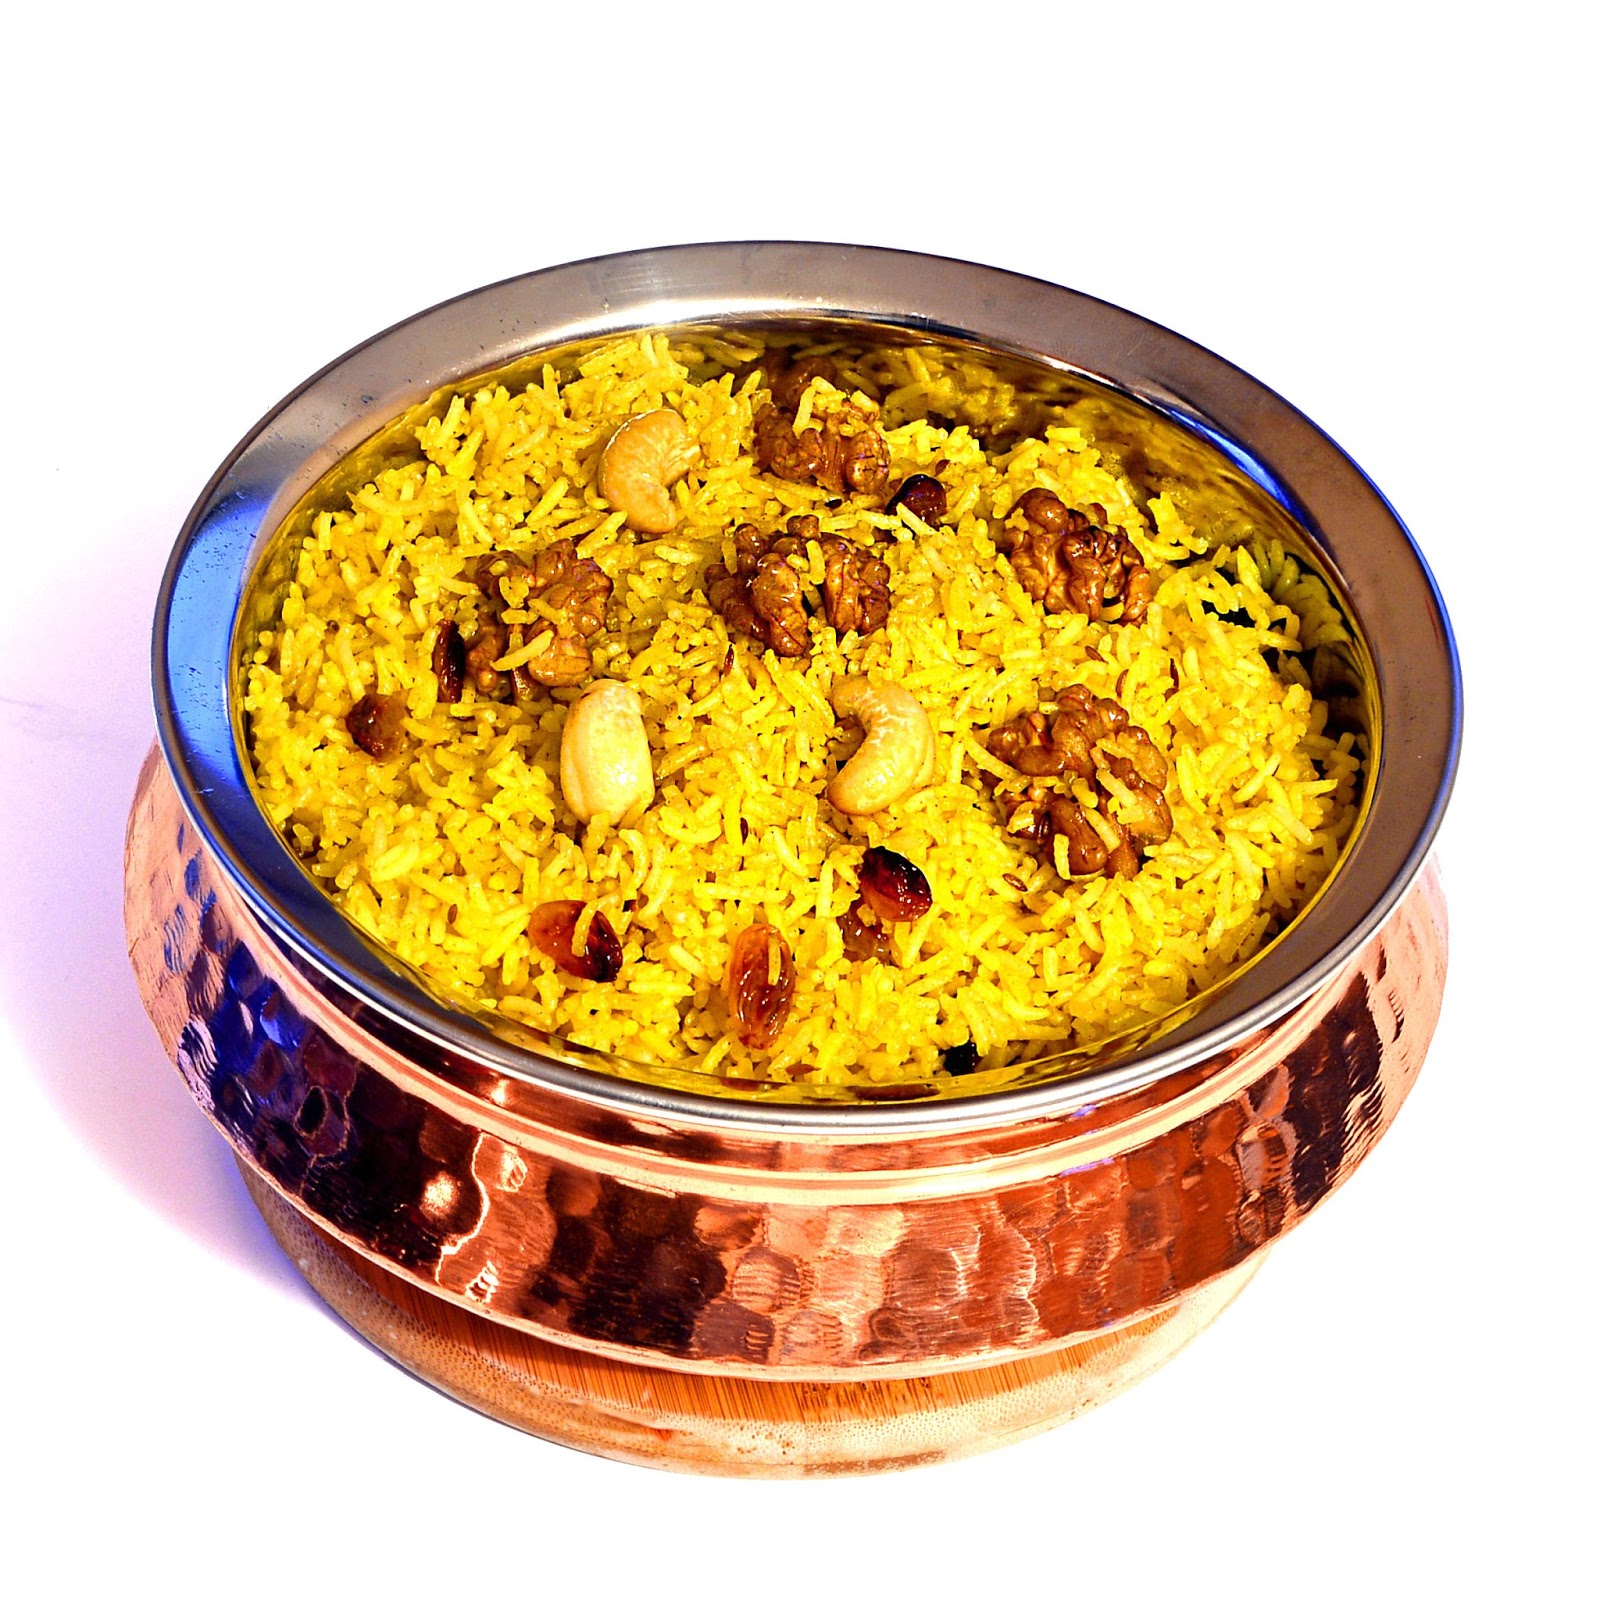 Zafrani Pulao (Saffron Rice) For That Special Dinner.